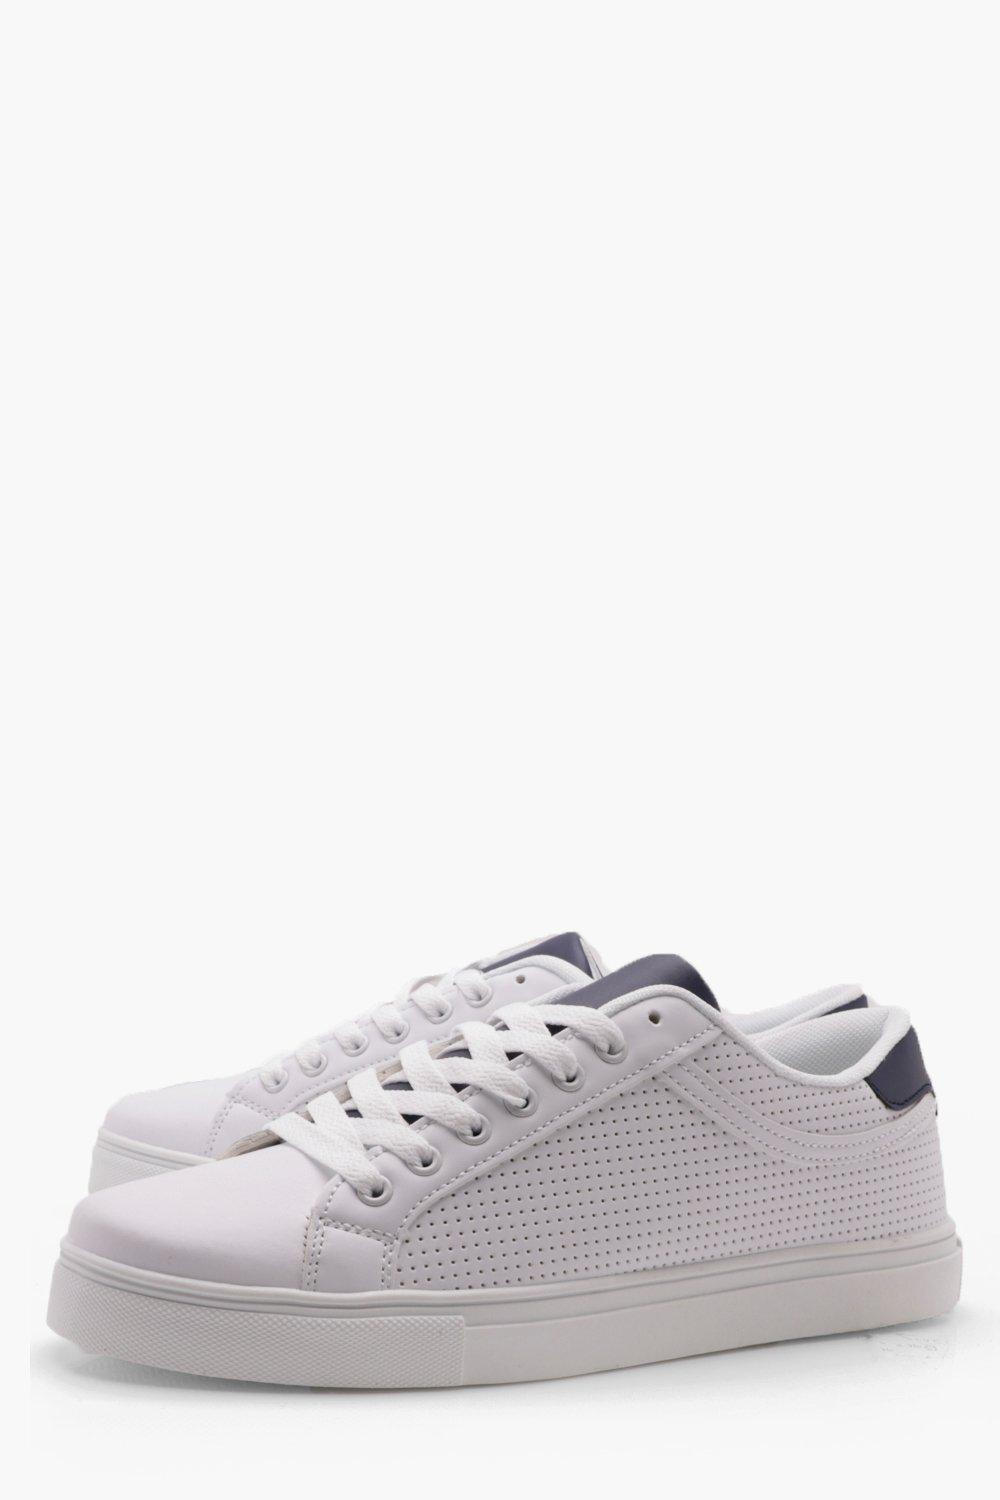 boohooMAN white Ponched Lace Up Trainer